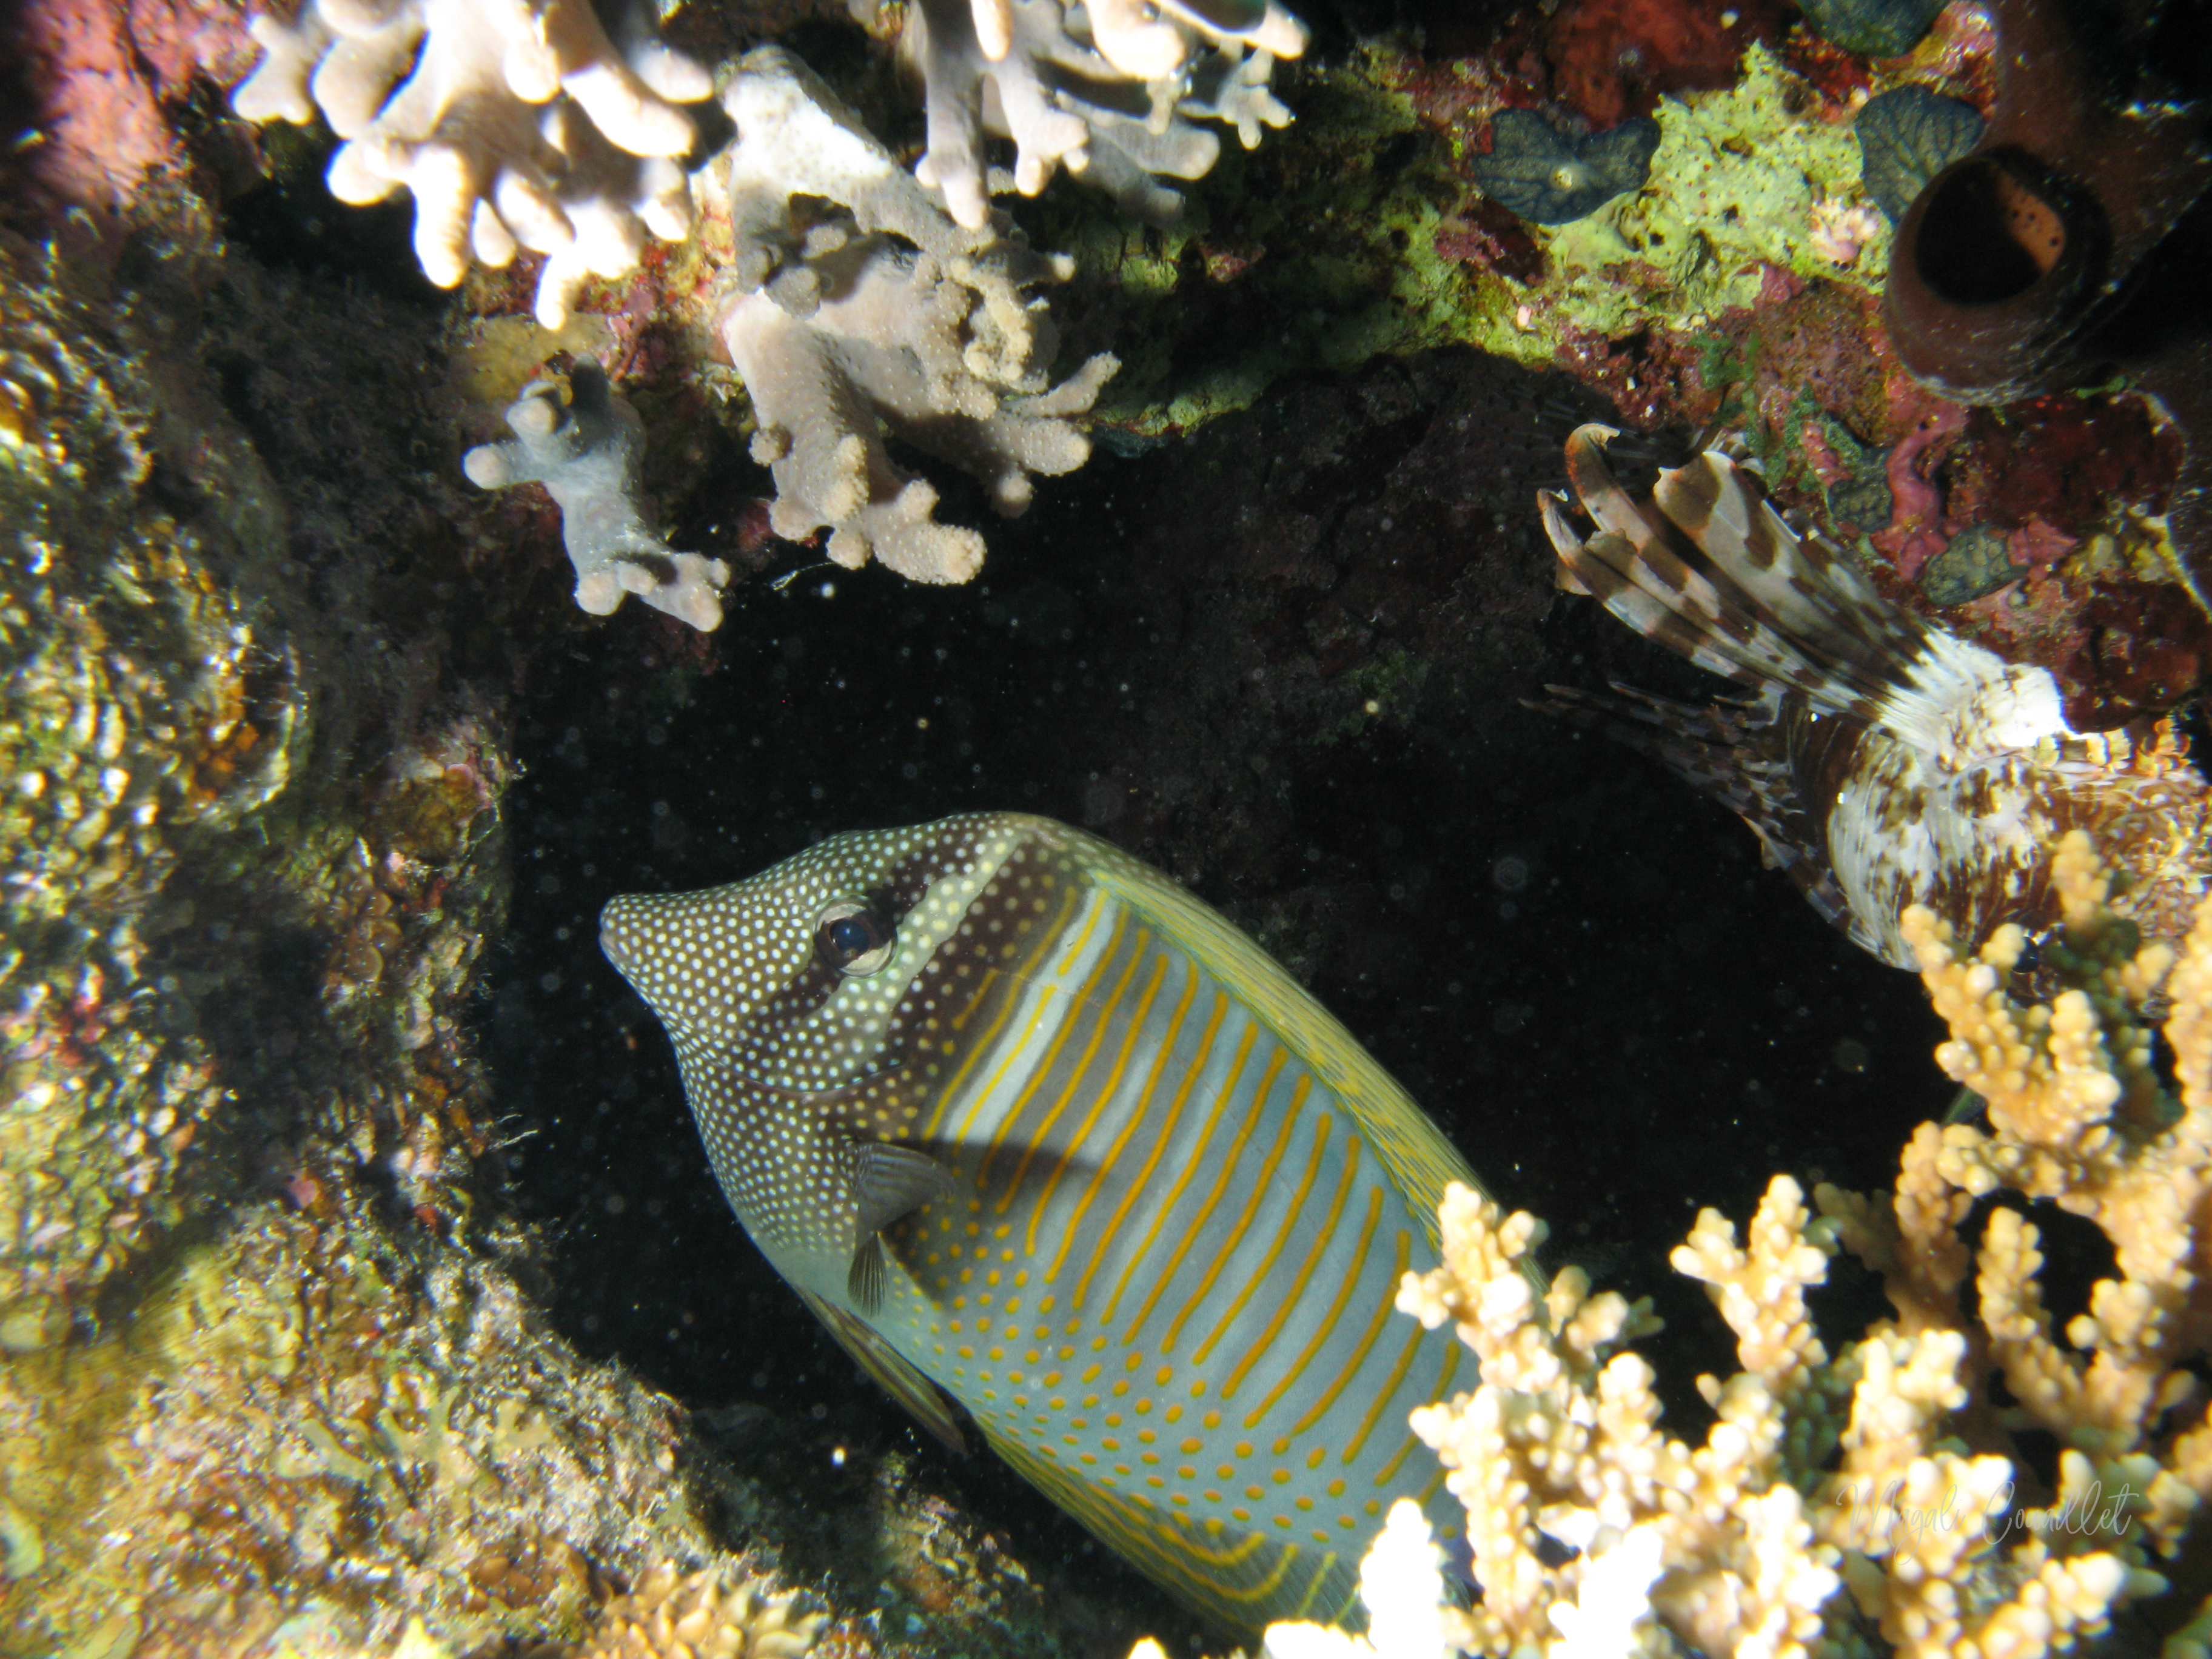 Chirurgien-voilier - Sailfintang